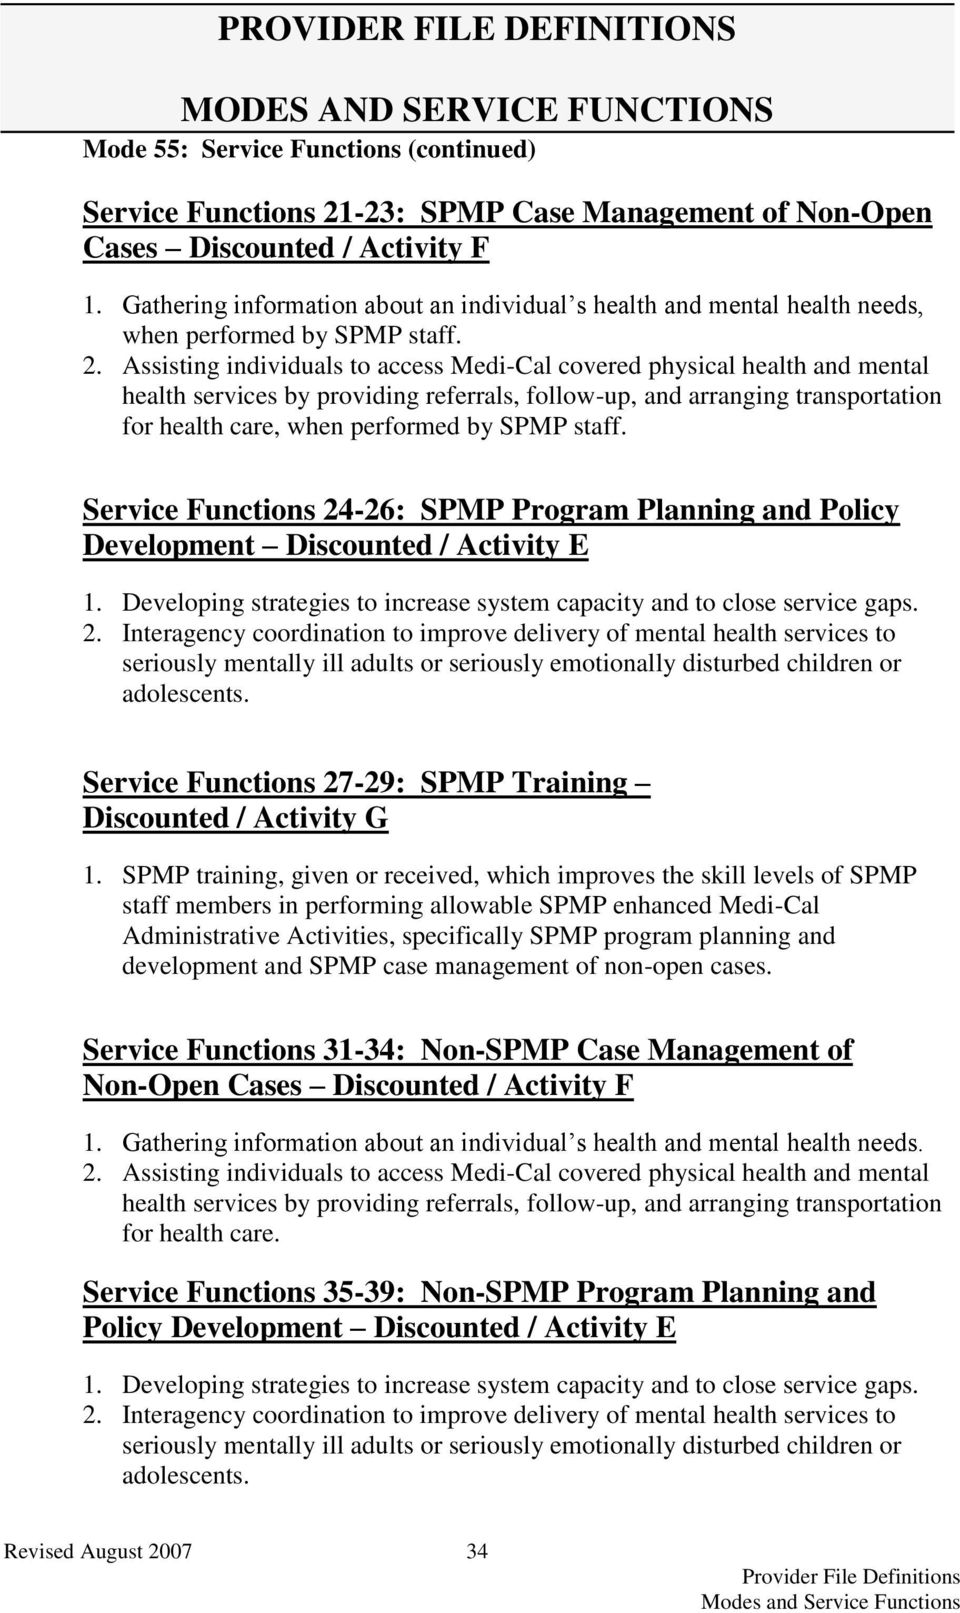 Assisting individuals to access Medi-Cal covered physical health and mental health services by providing referrals, follow-up, and arranging transportation for health care, when performed by SPMP